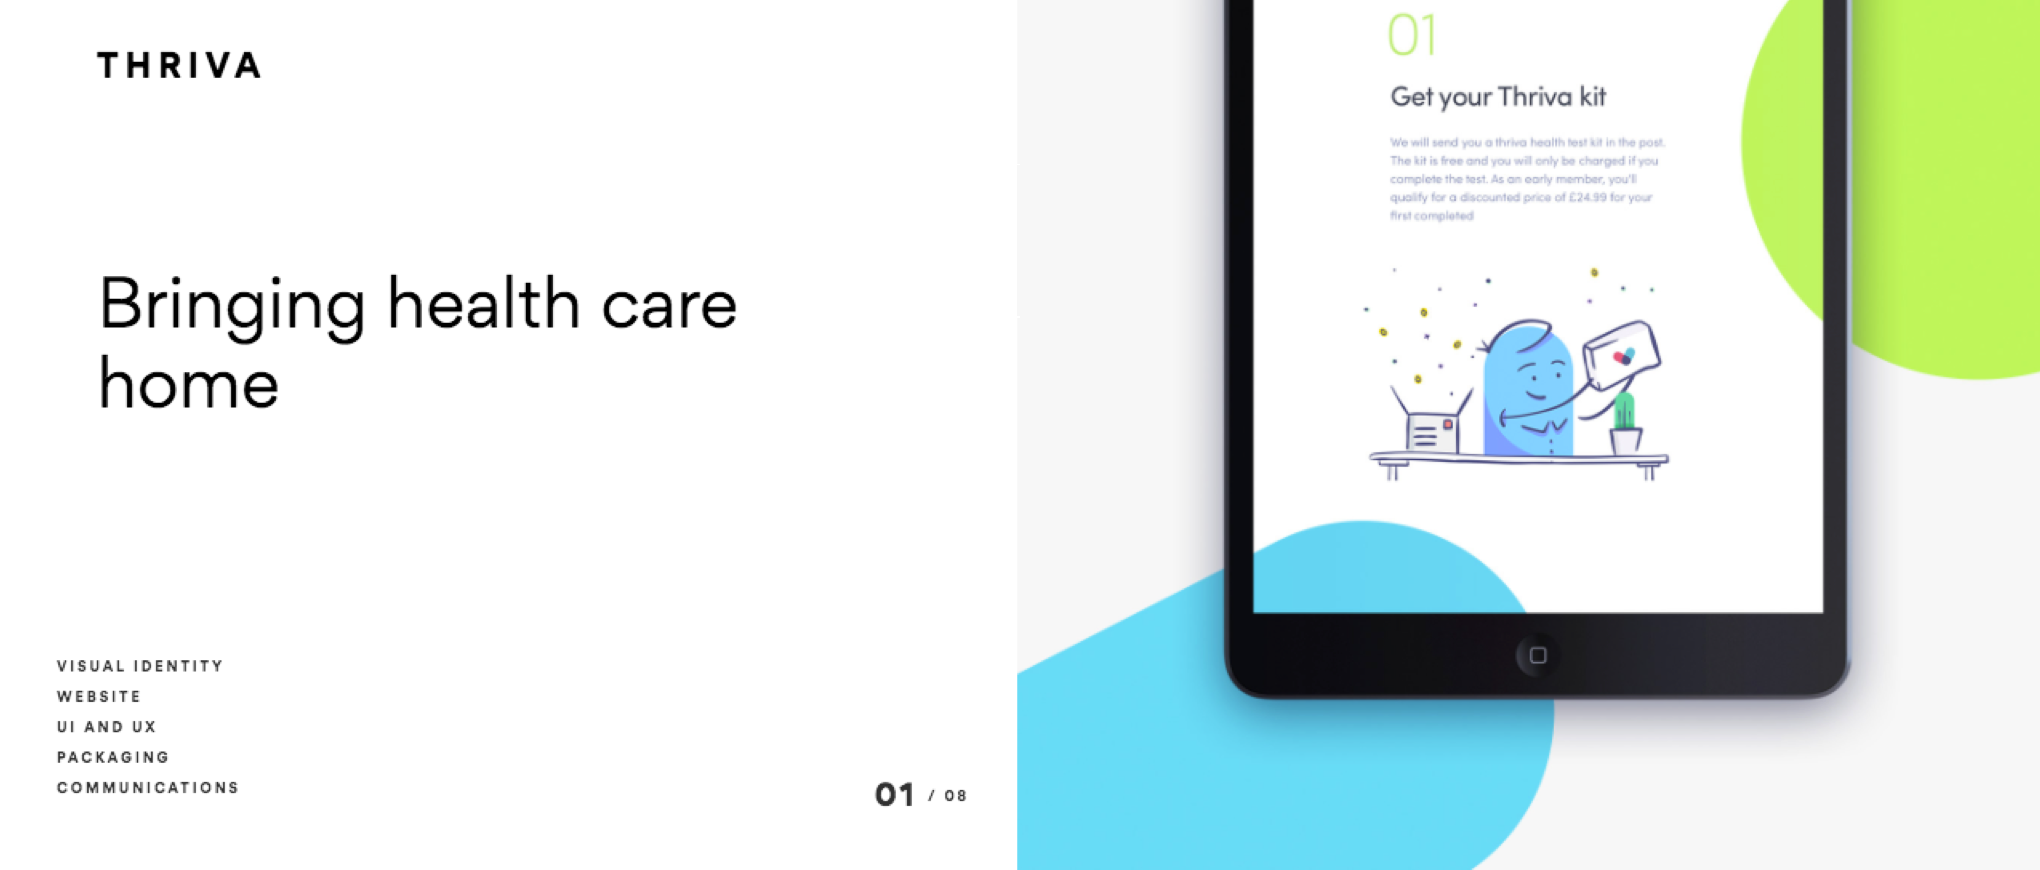 White Space In Ui Design Best Practices For Using White Space By Canvasflip Ux Planet